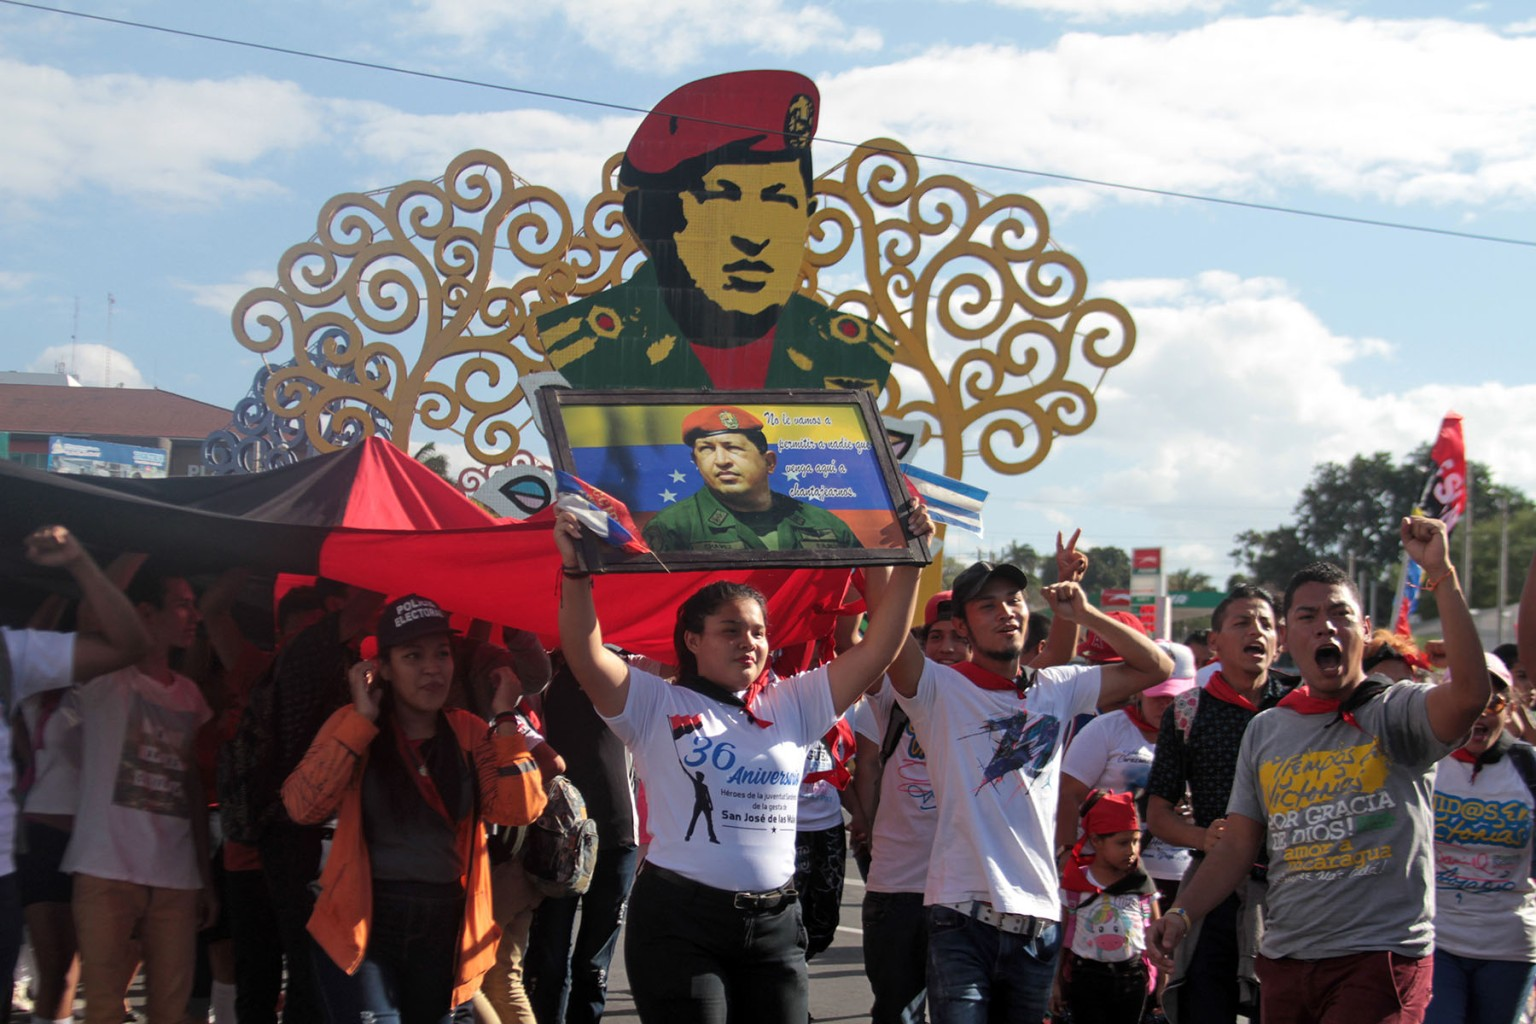 Sandinista supporters march in homage to Venezuelan late president Hugo Chavez on the sixth anniversary of his death in Managua Nicaragua, on March 5. MAYNOR VALENZUELA/AFP/Getty Images